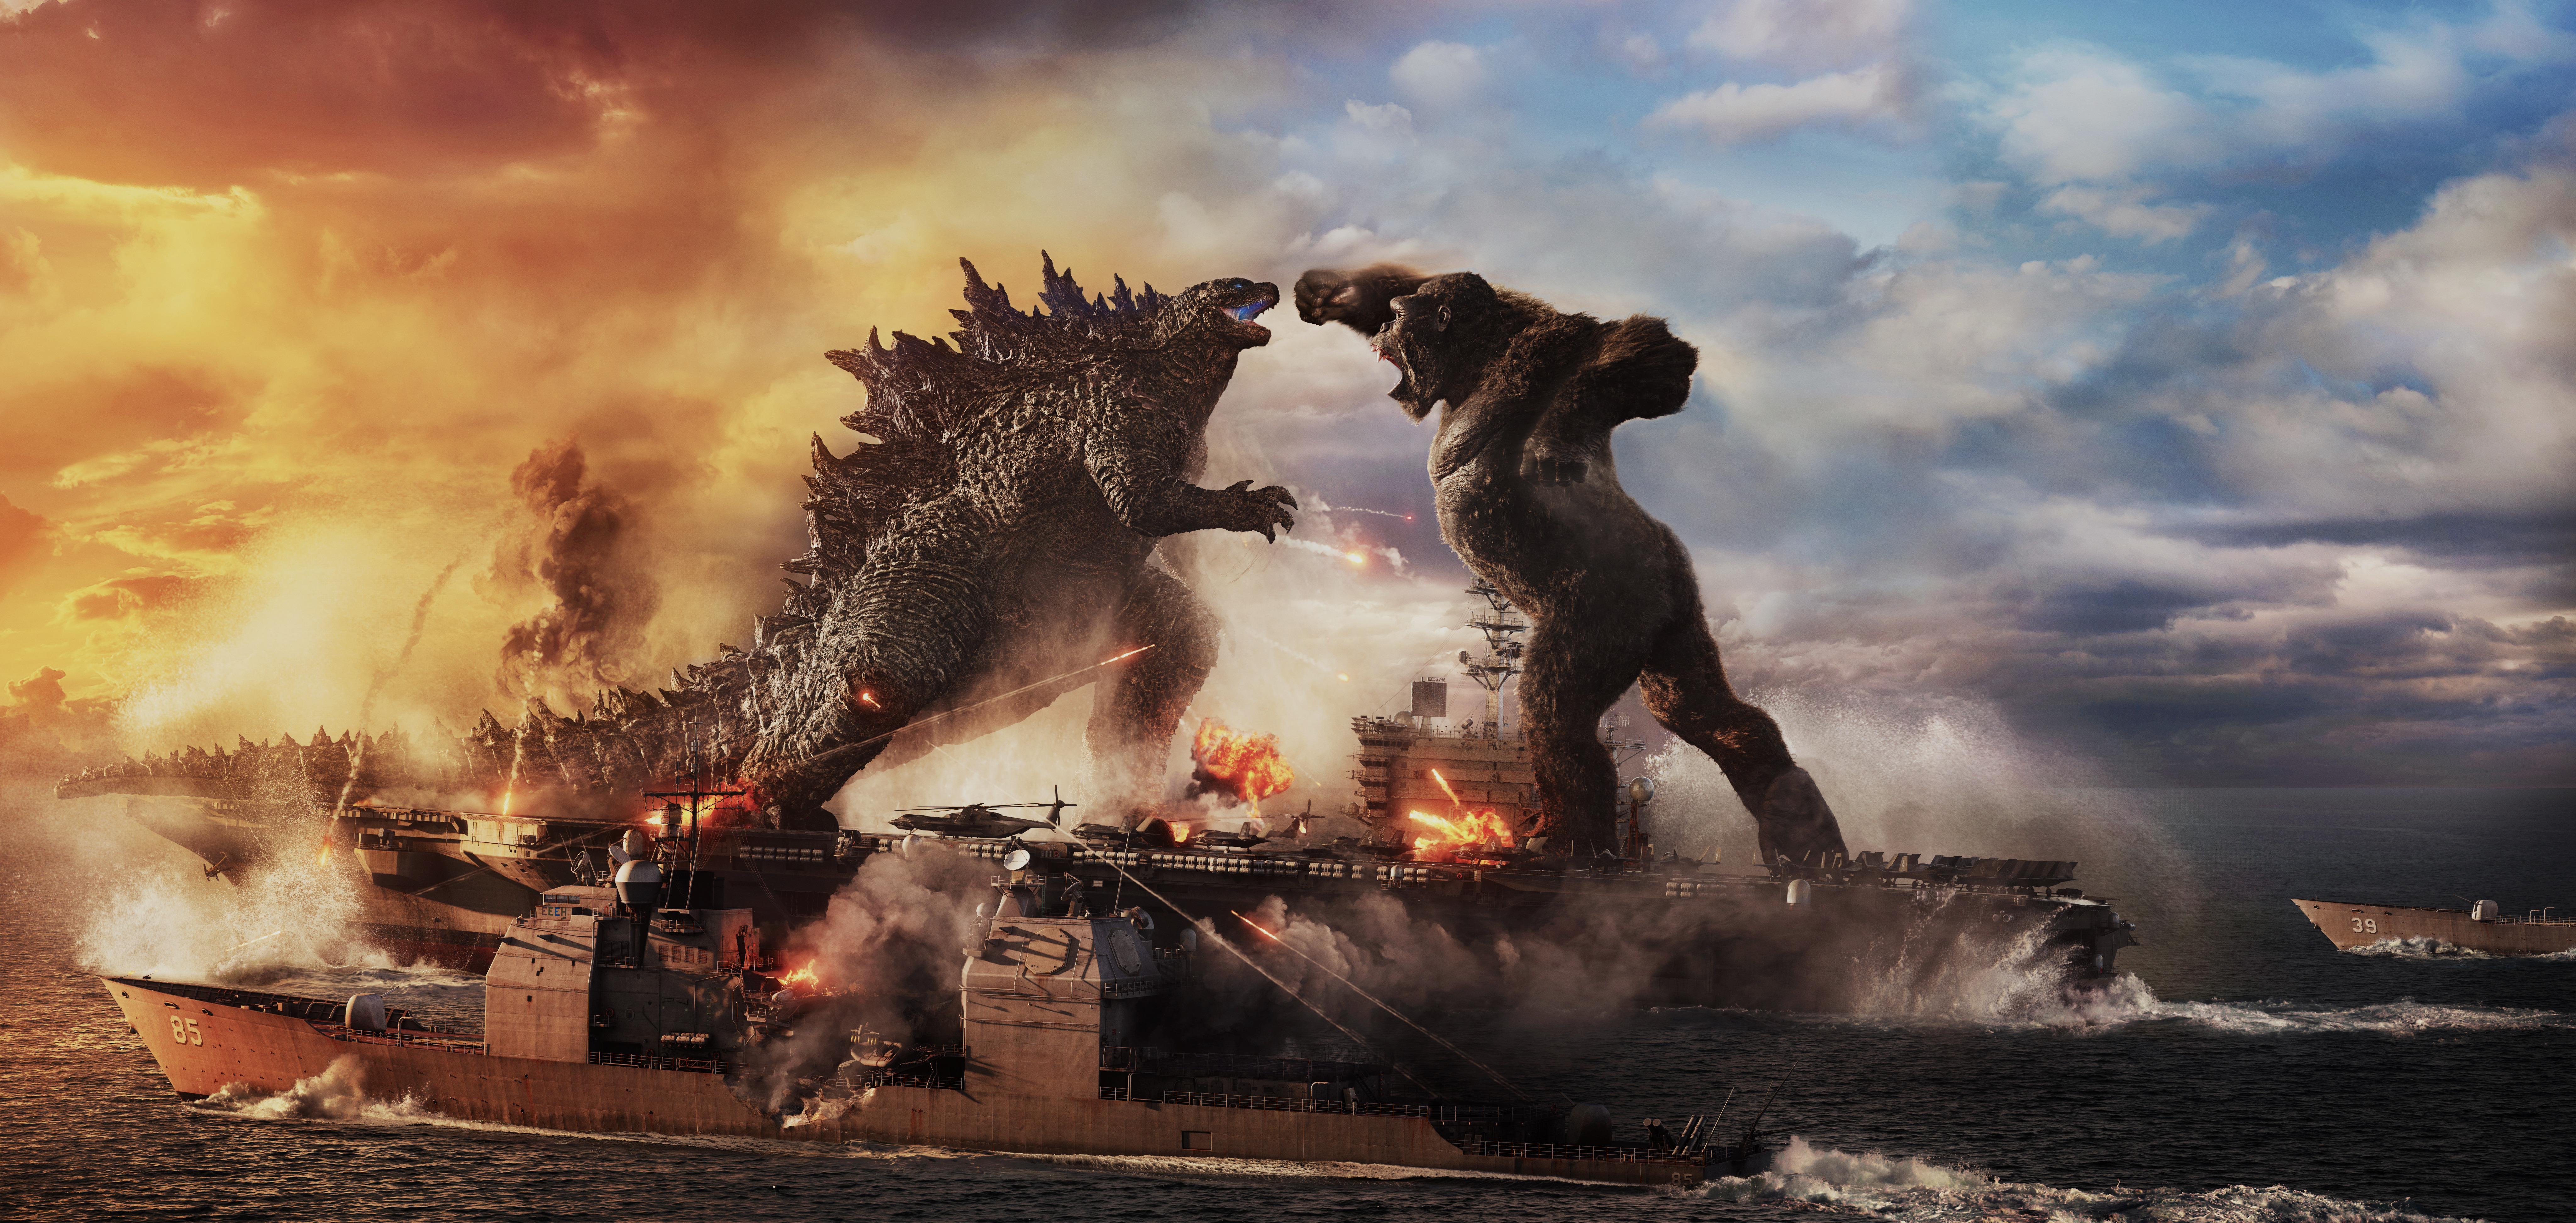 Godzilla battles Kong in the aptly titled 'Godzilla vs. Kong'